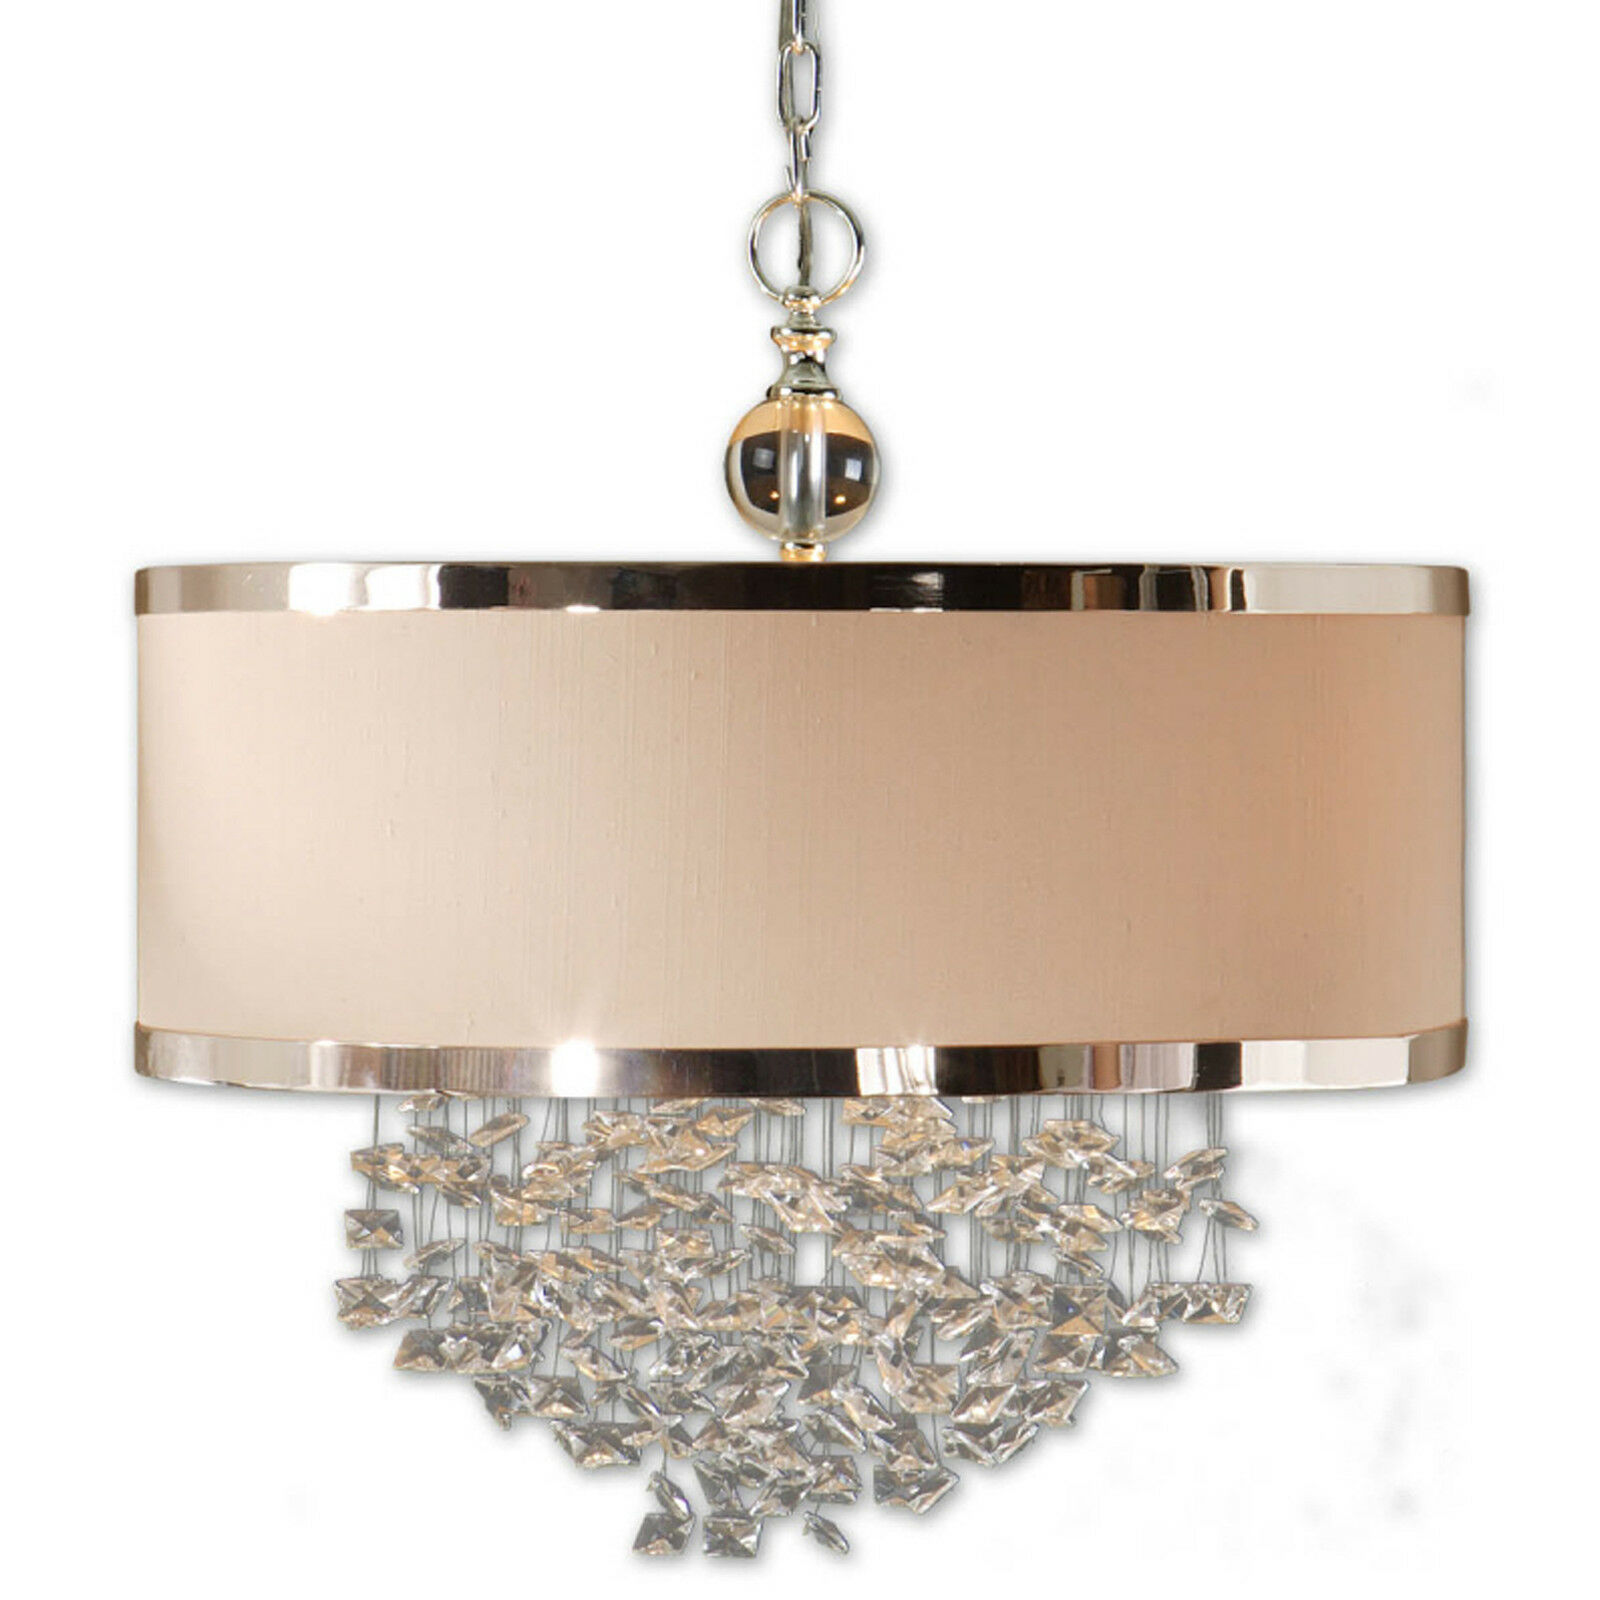 Contemporary Modern Crystal Drum Shade Chandelier 792977219089